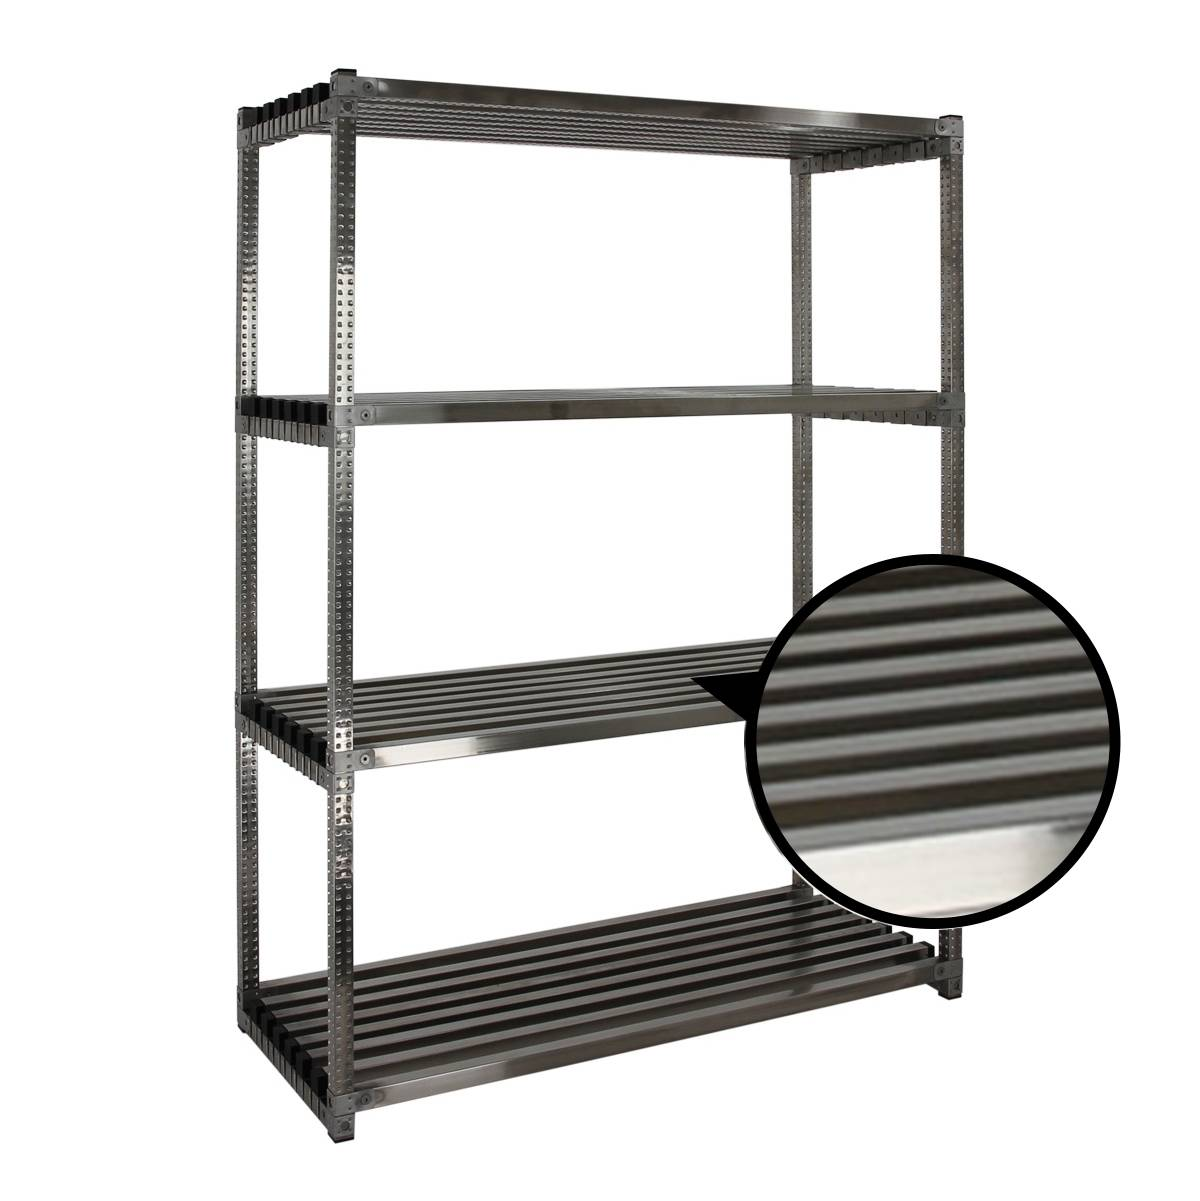 Axess Industries Rayonnage alimentaire inox à tablettes tubulaires   Long. utile 1000 mm   Pro...